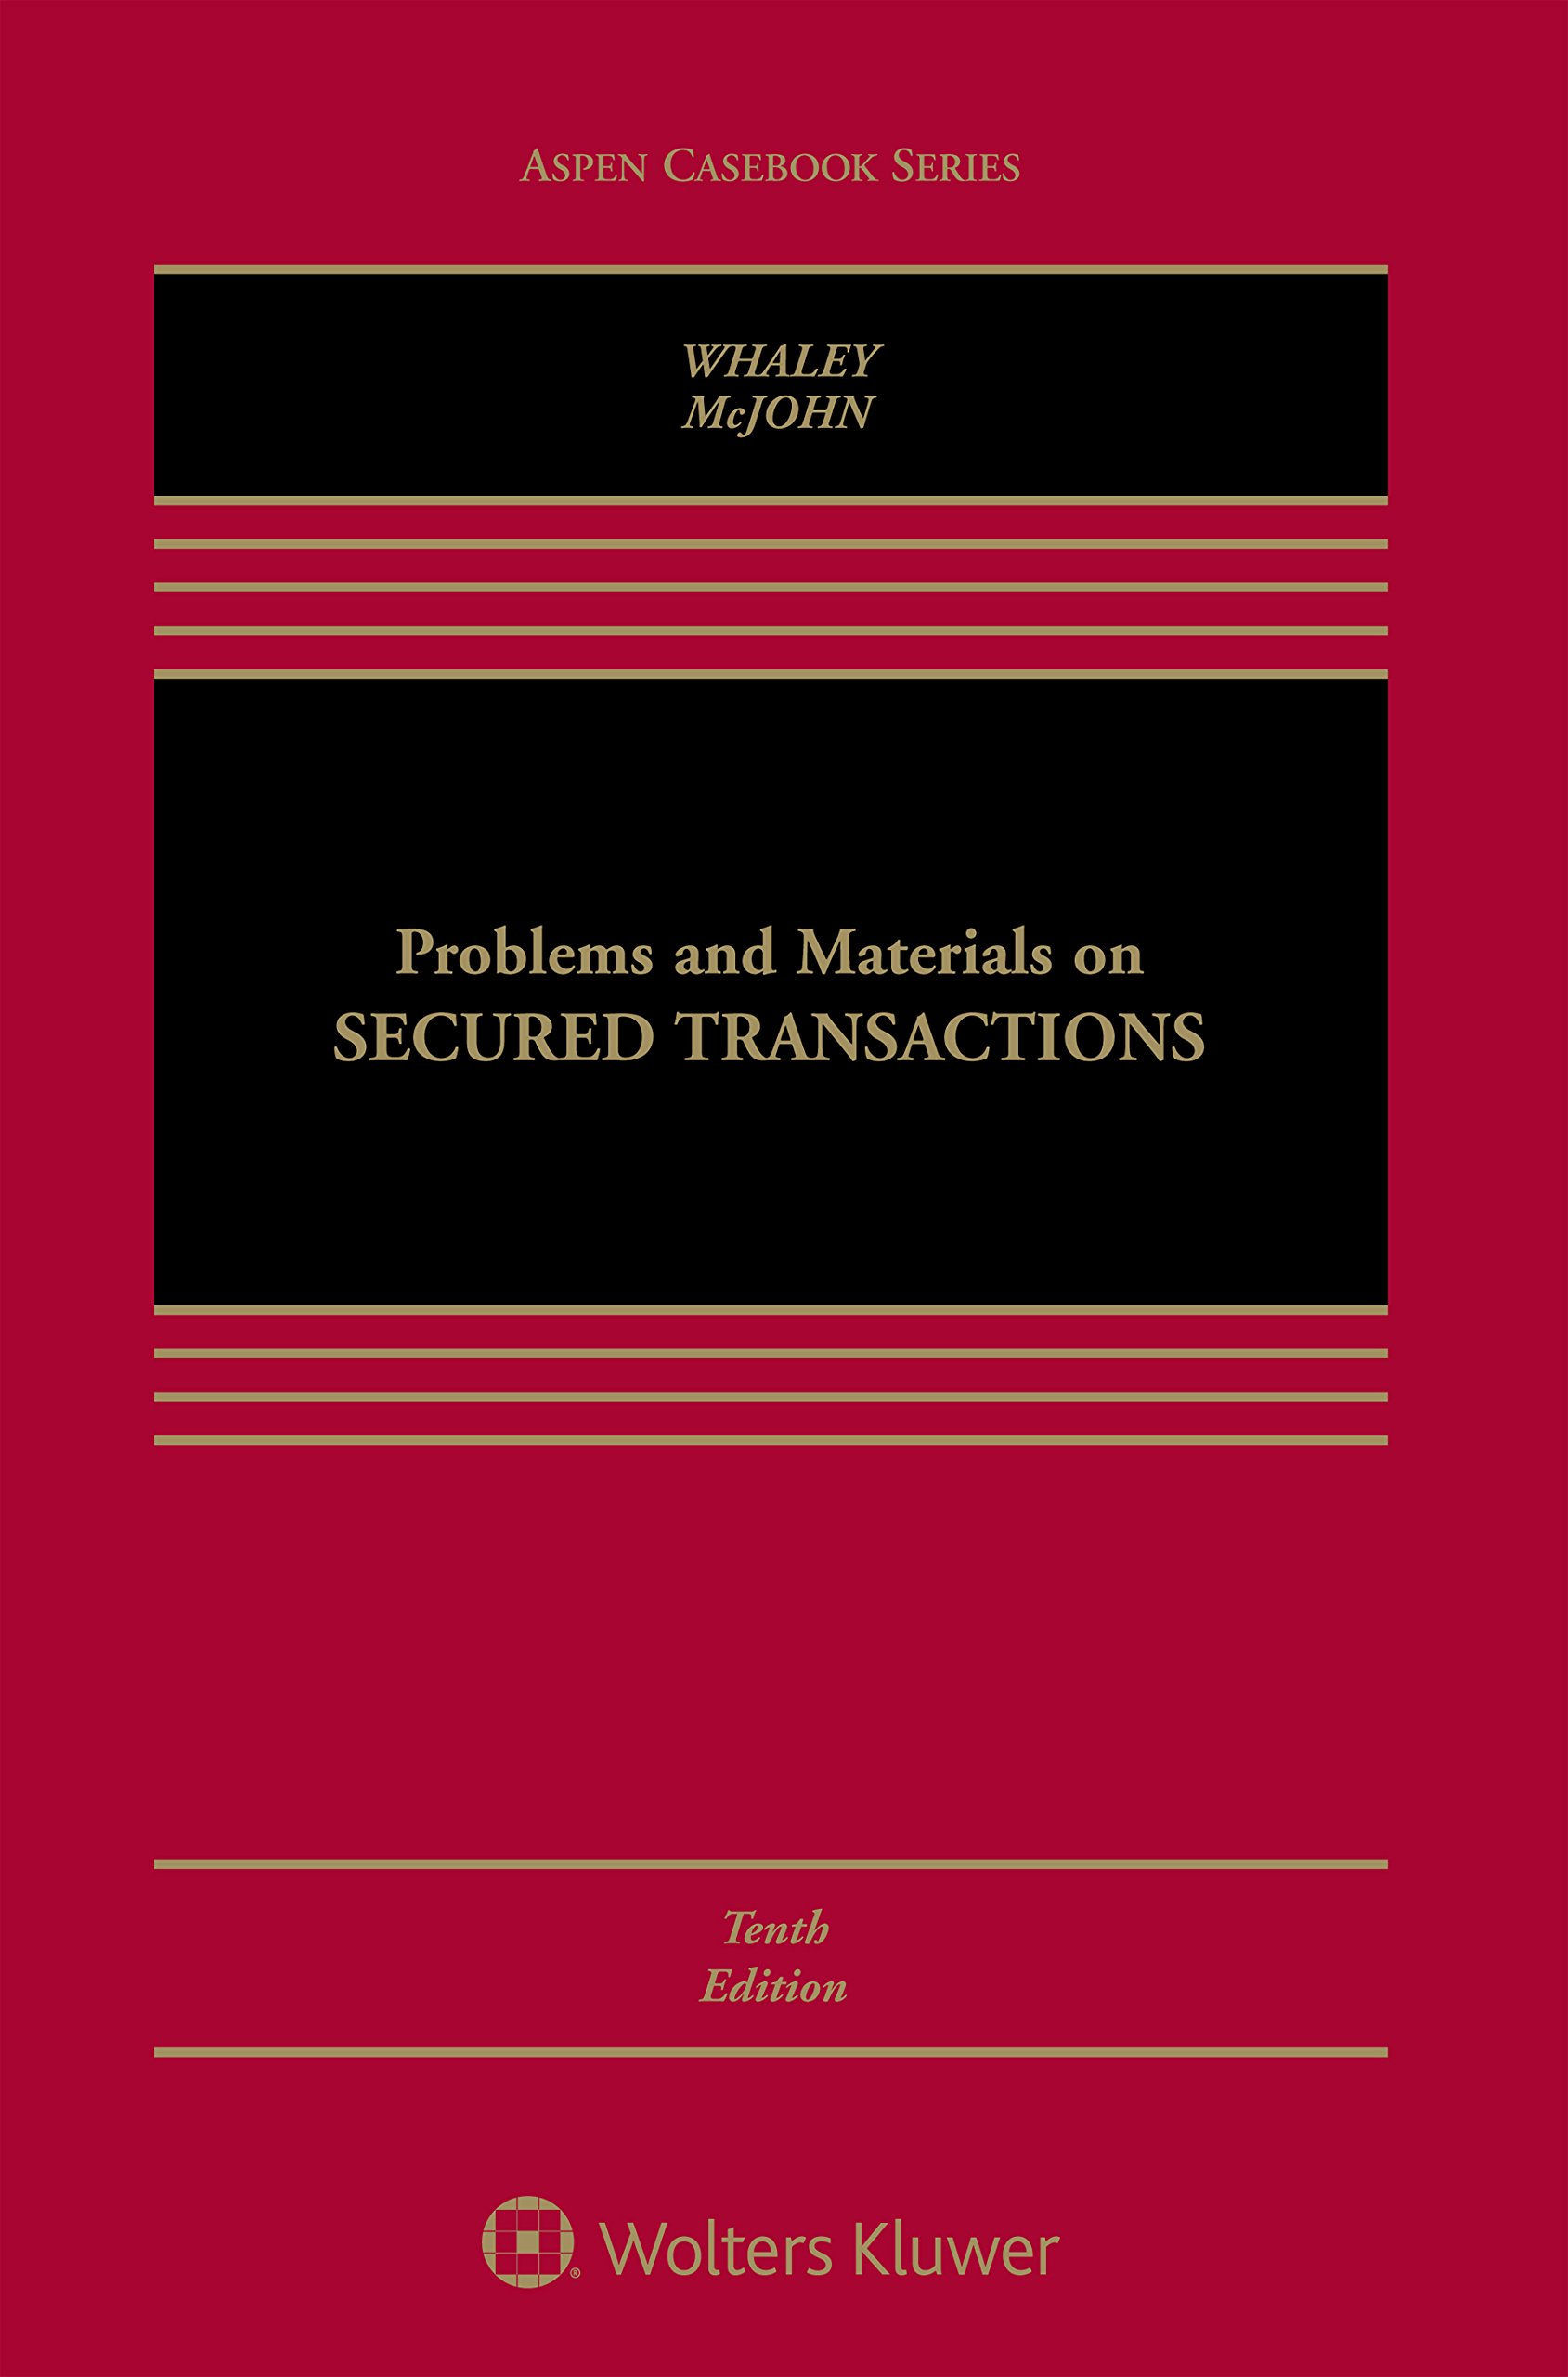 Problems and Materials on Secured Transactions (Aspen Casebook)